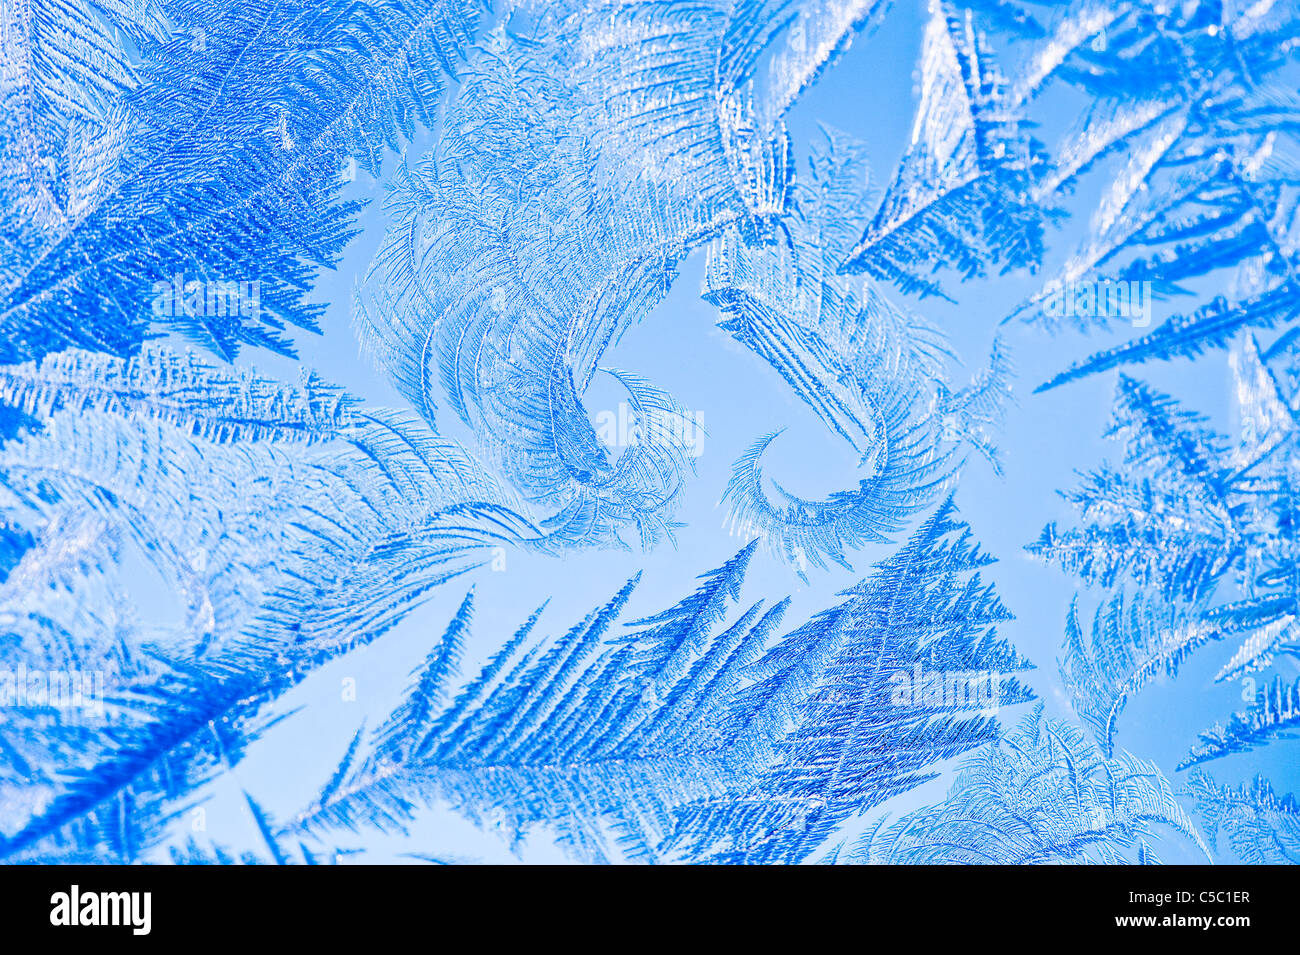 Background of ice crystals against blue background - Stock Image